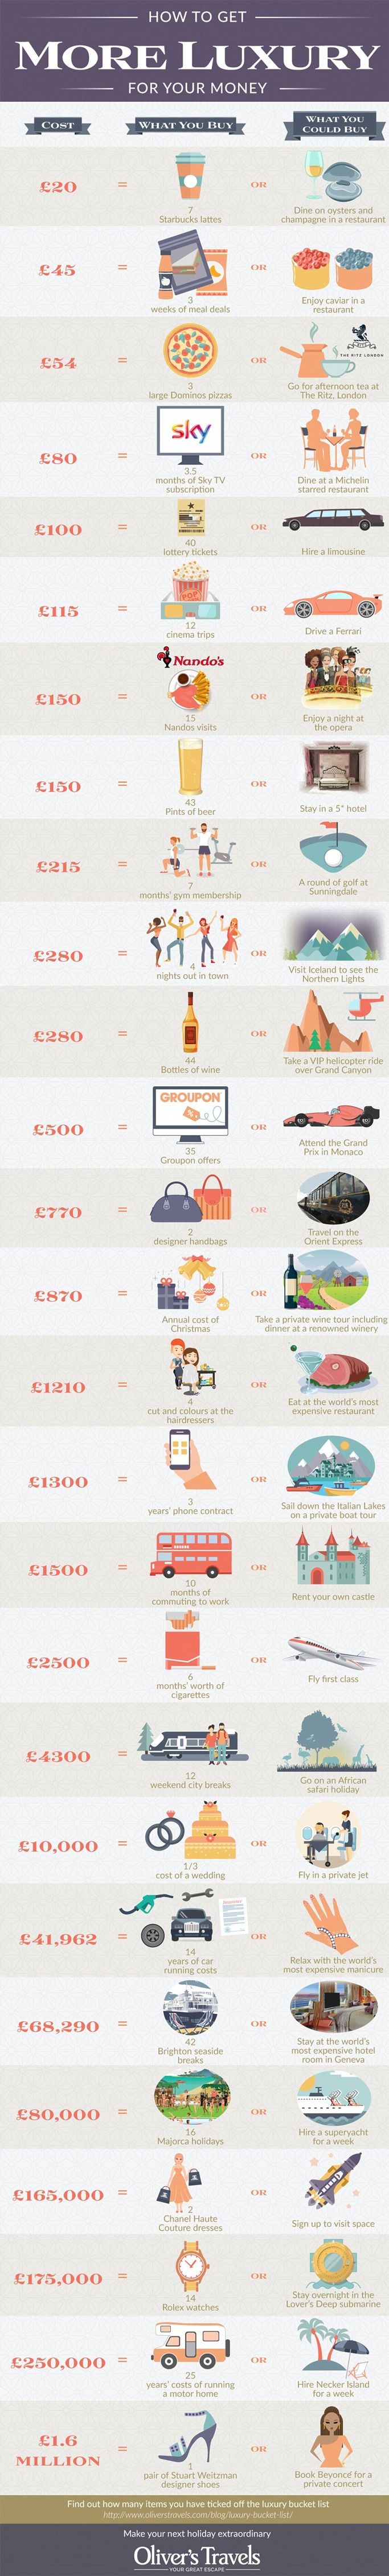 Oliver's Travels  infographic